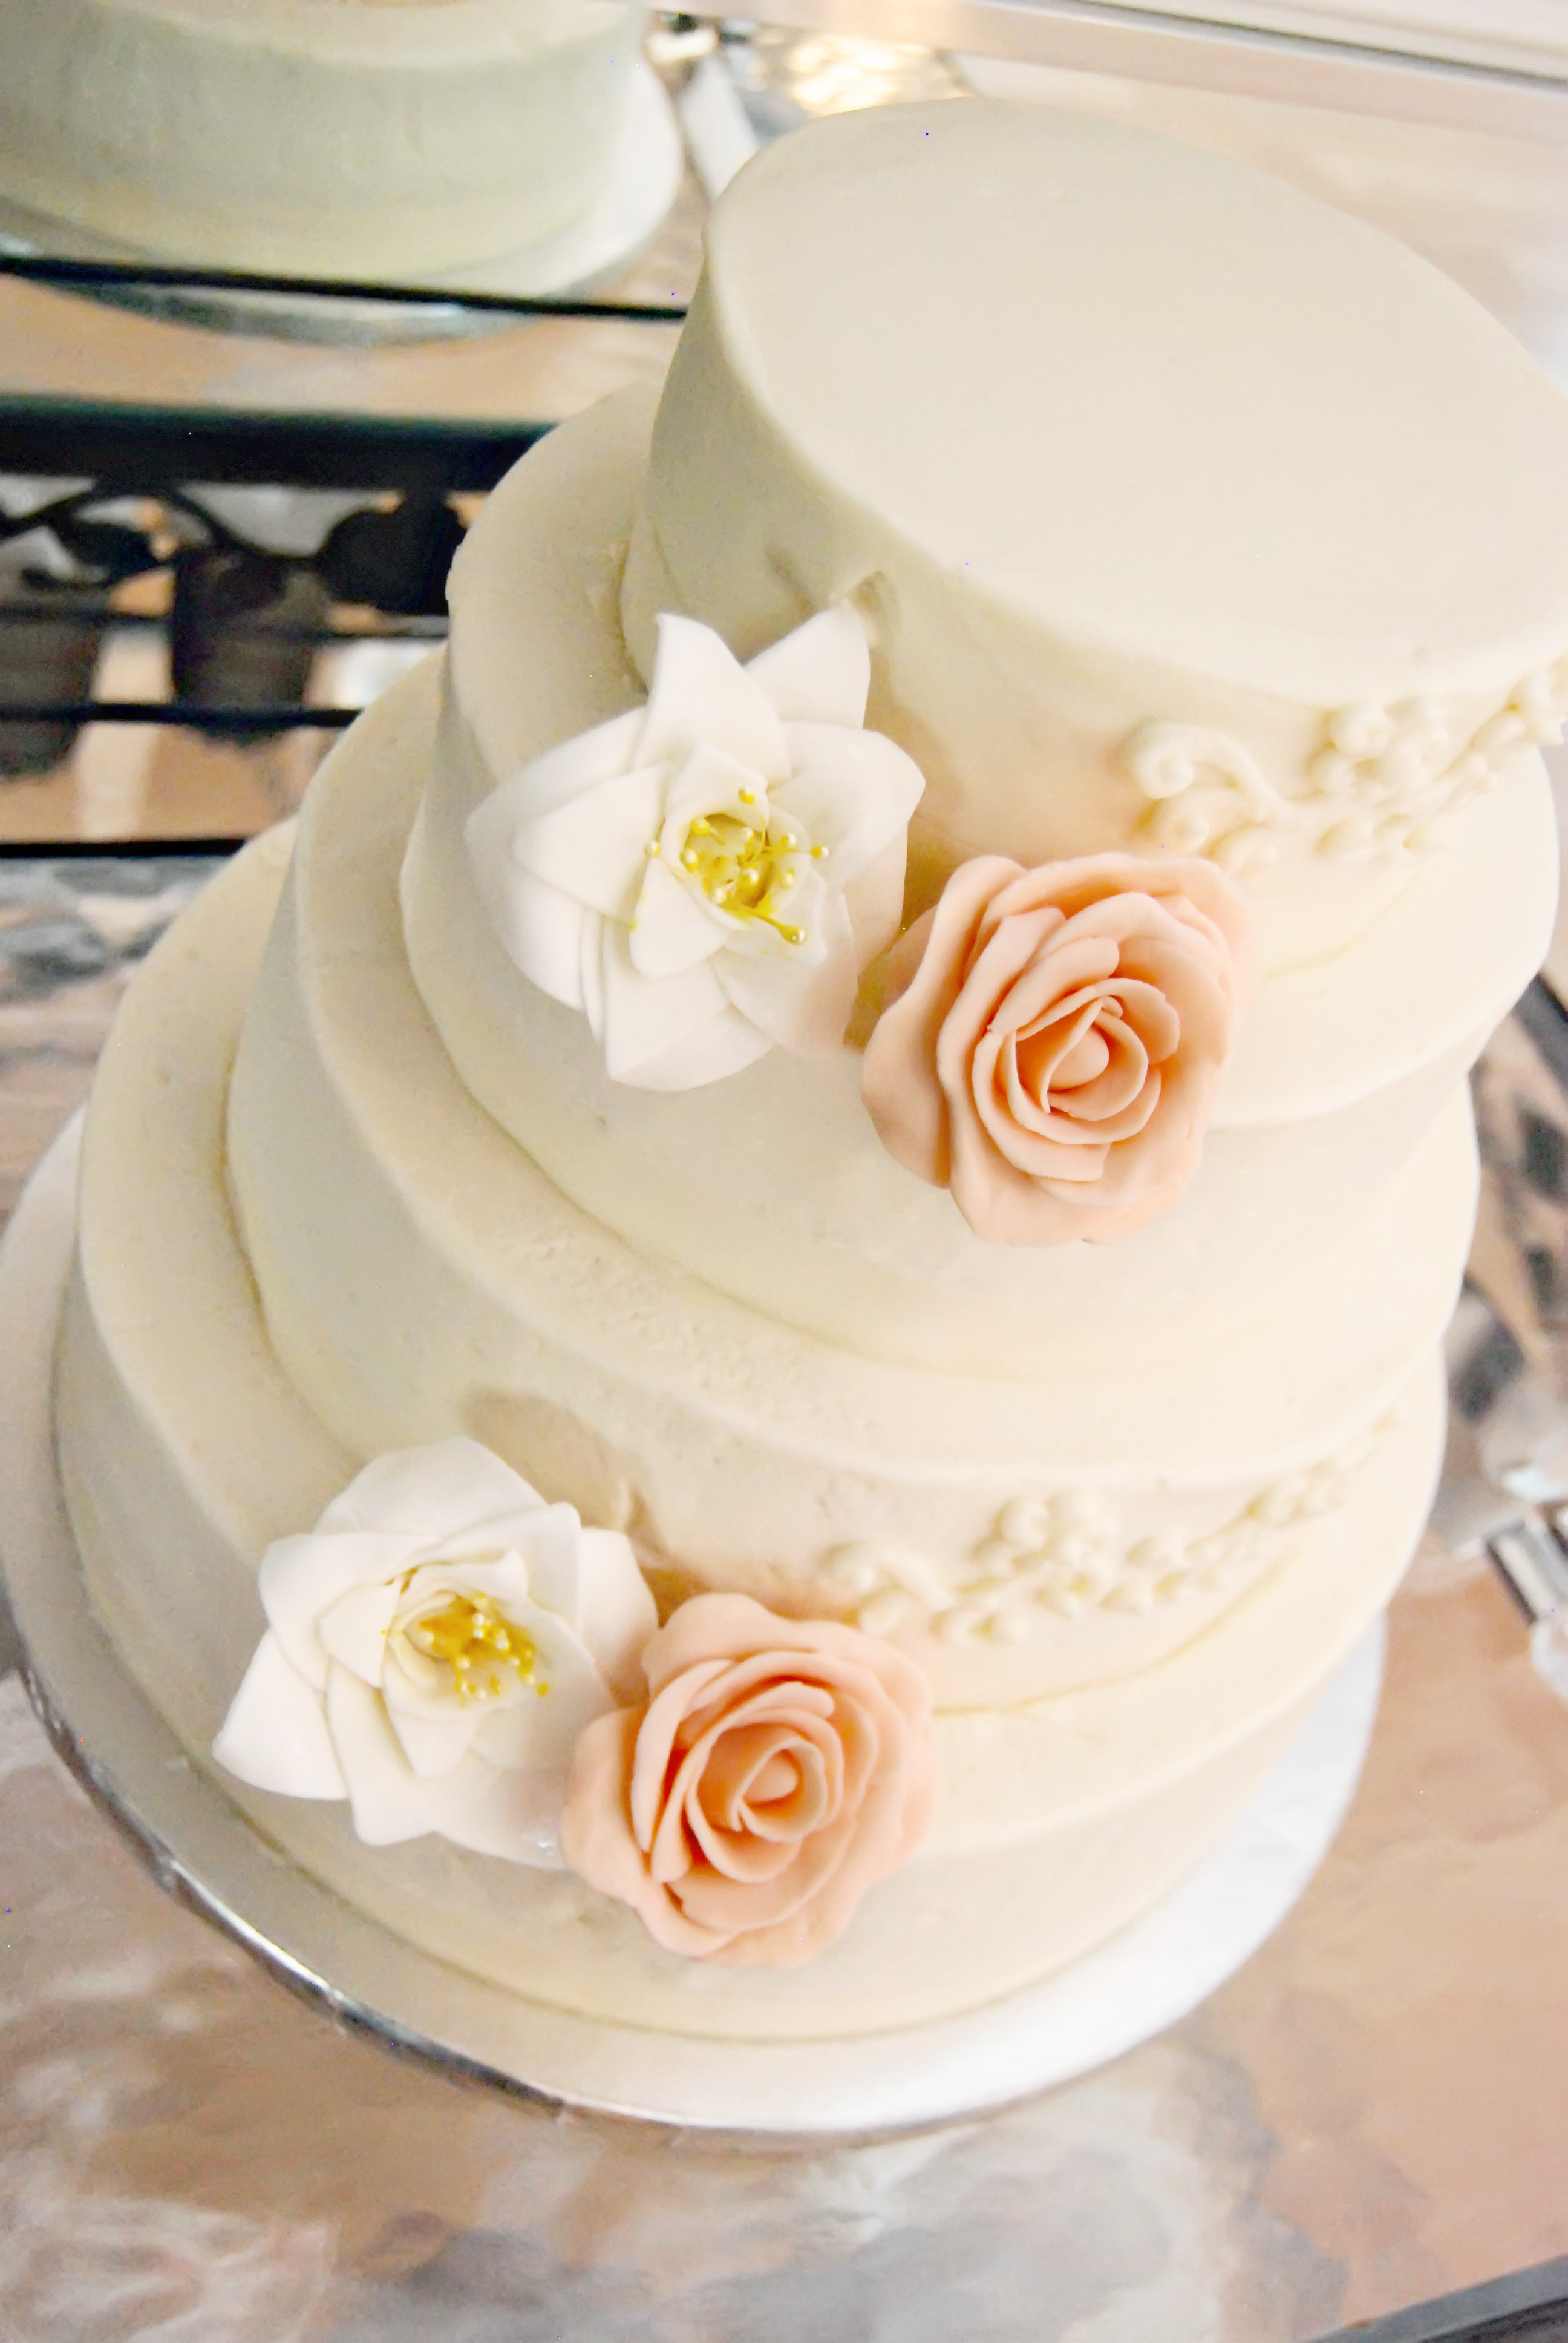 Lowes Foods Wedding Cakes  Lowes Foods Bakery Products